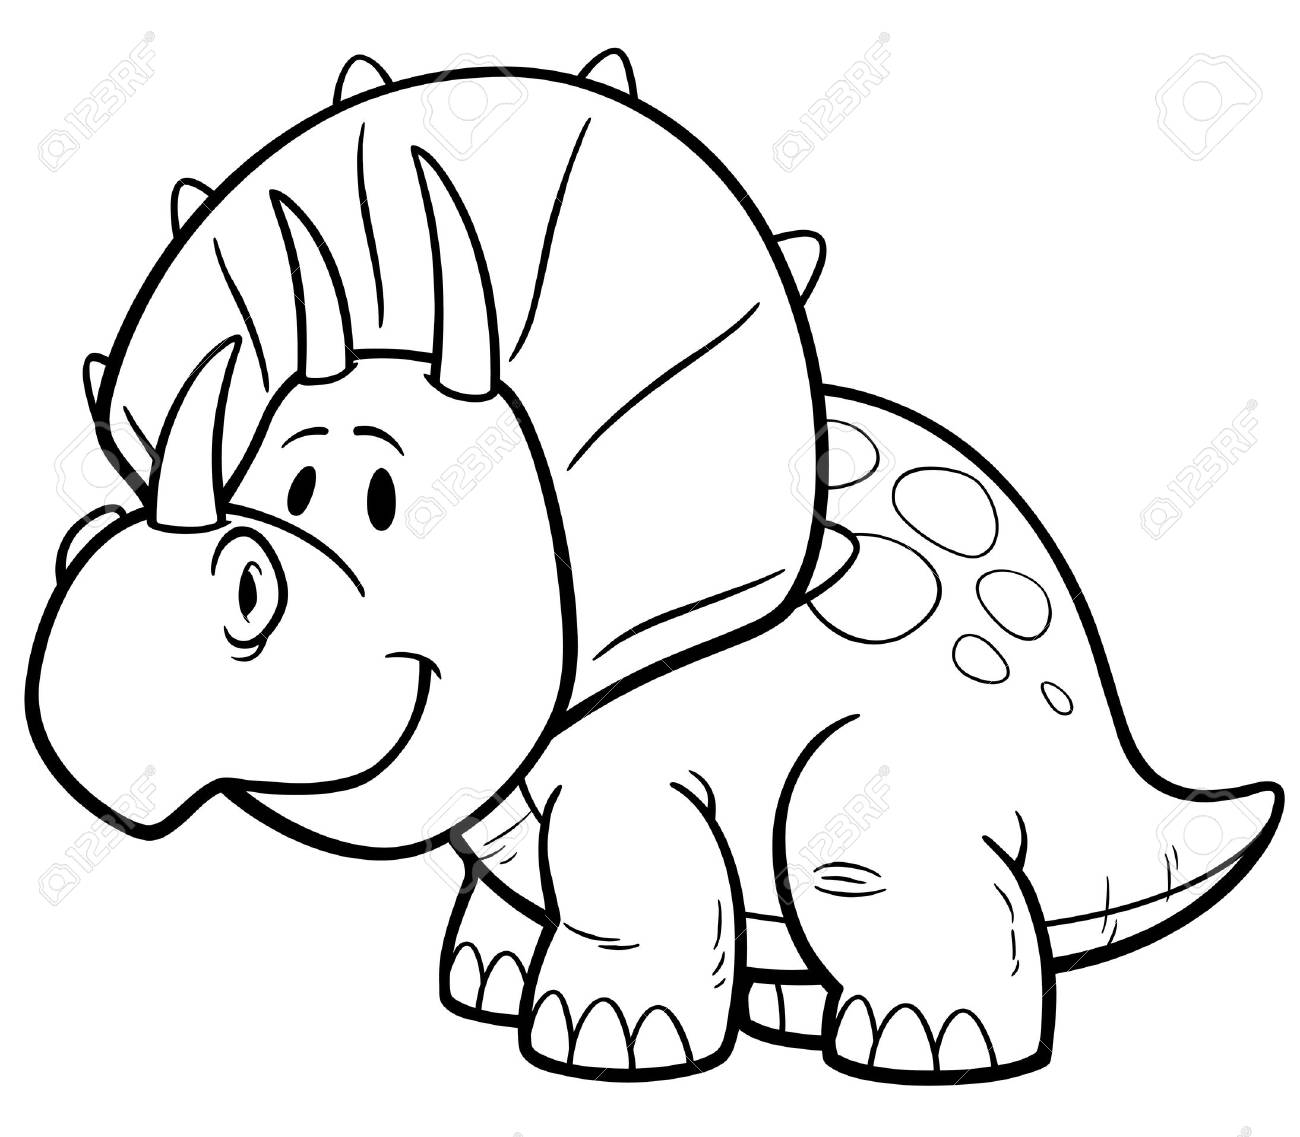 - Illustration Of Dinosaurs Cartoon - Coloring Book Royalty Free